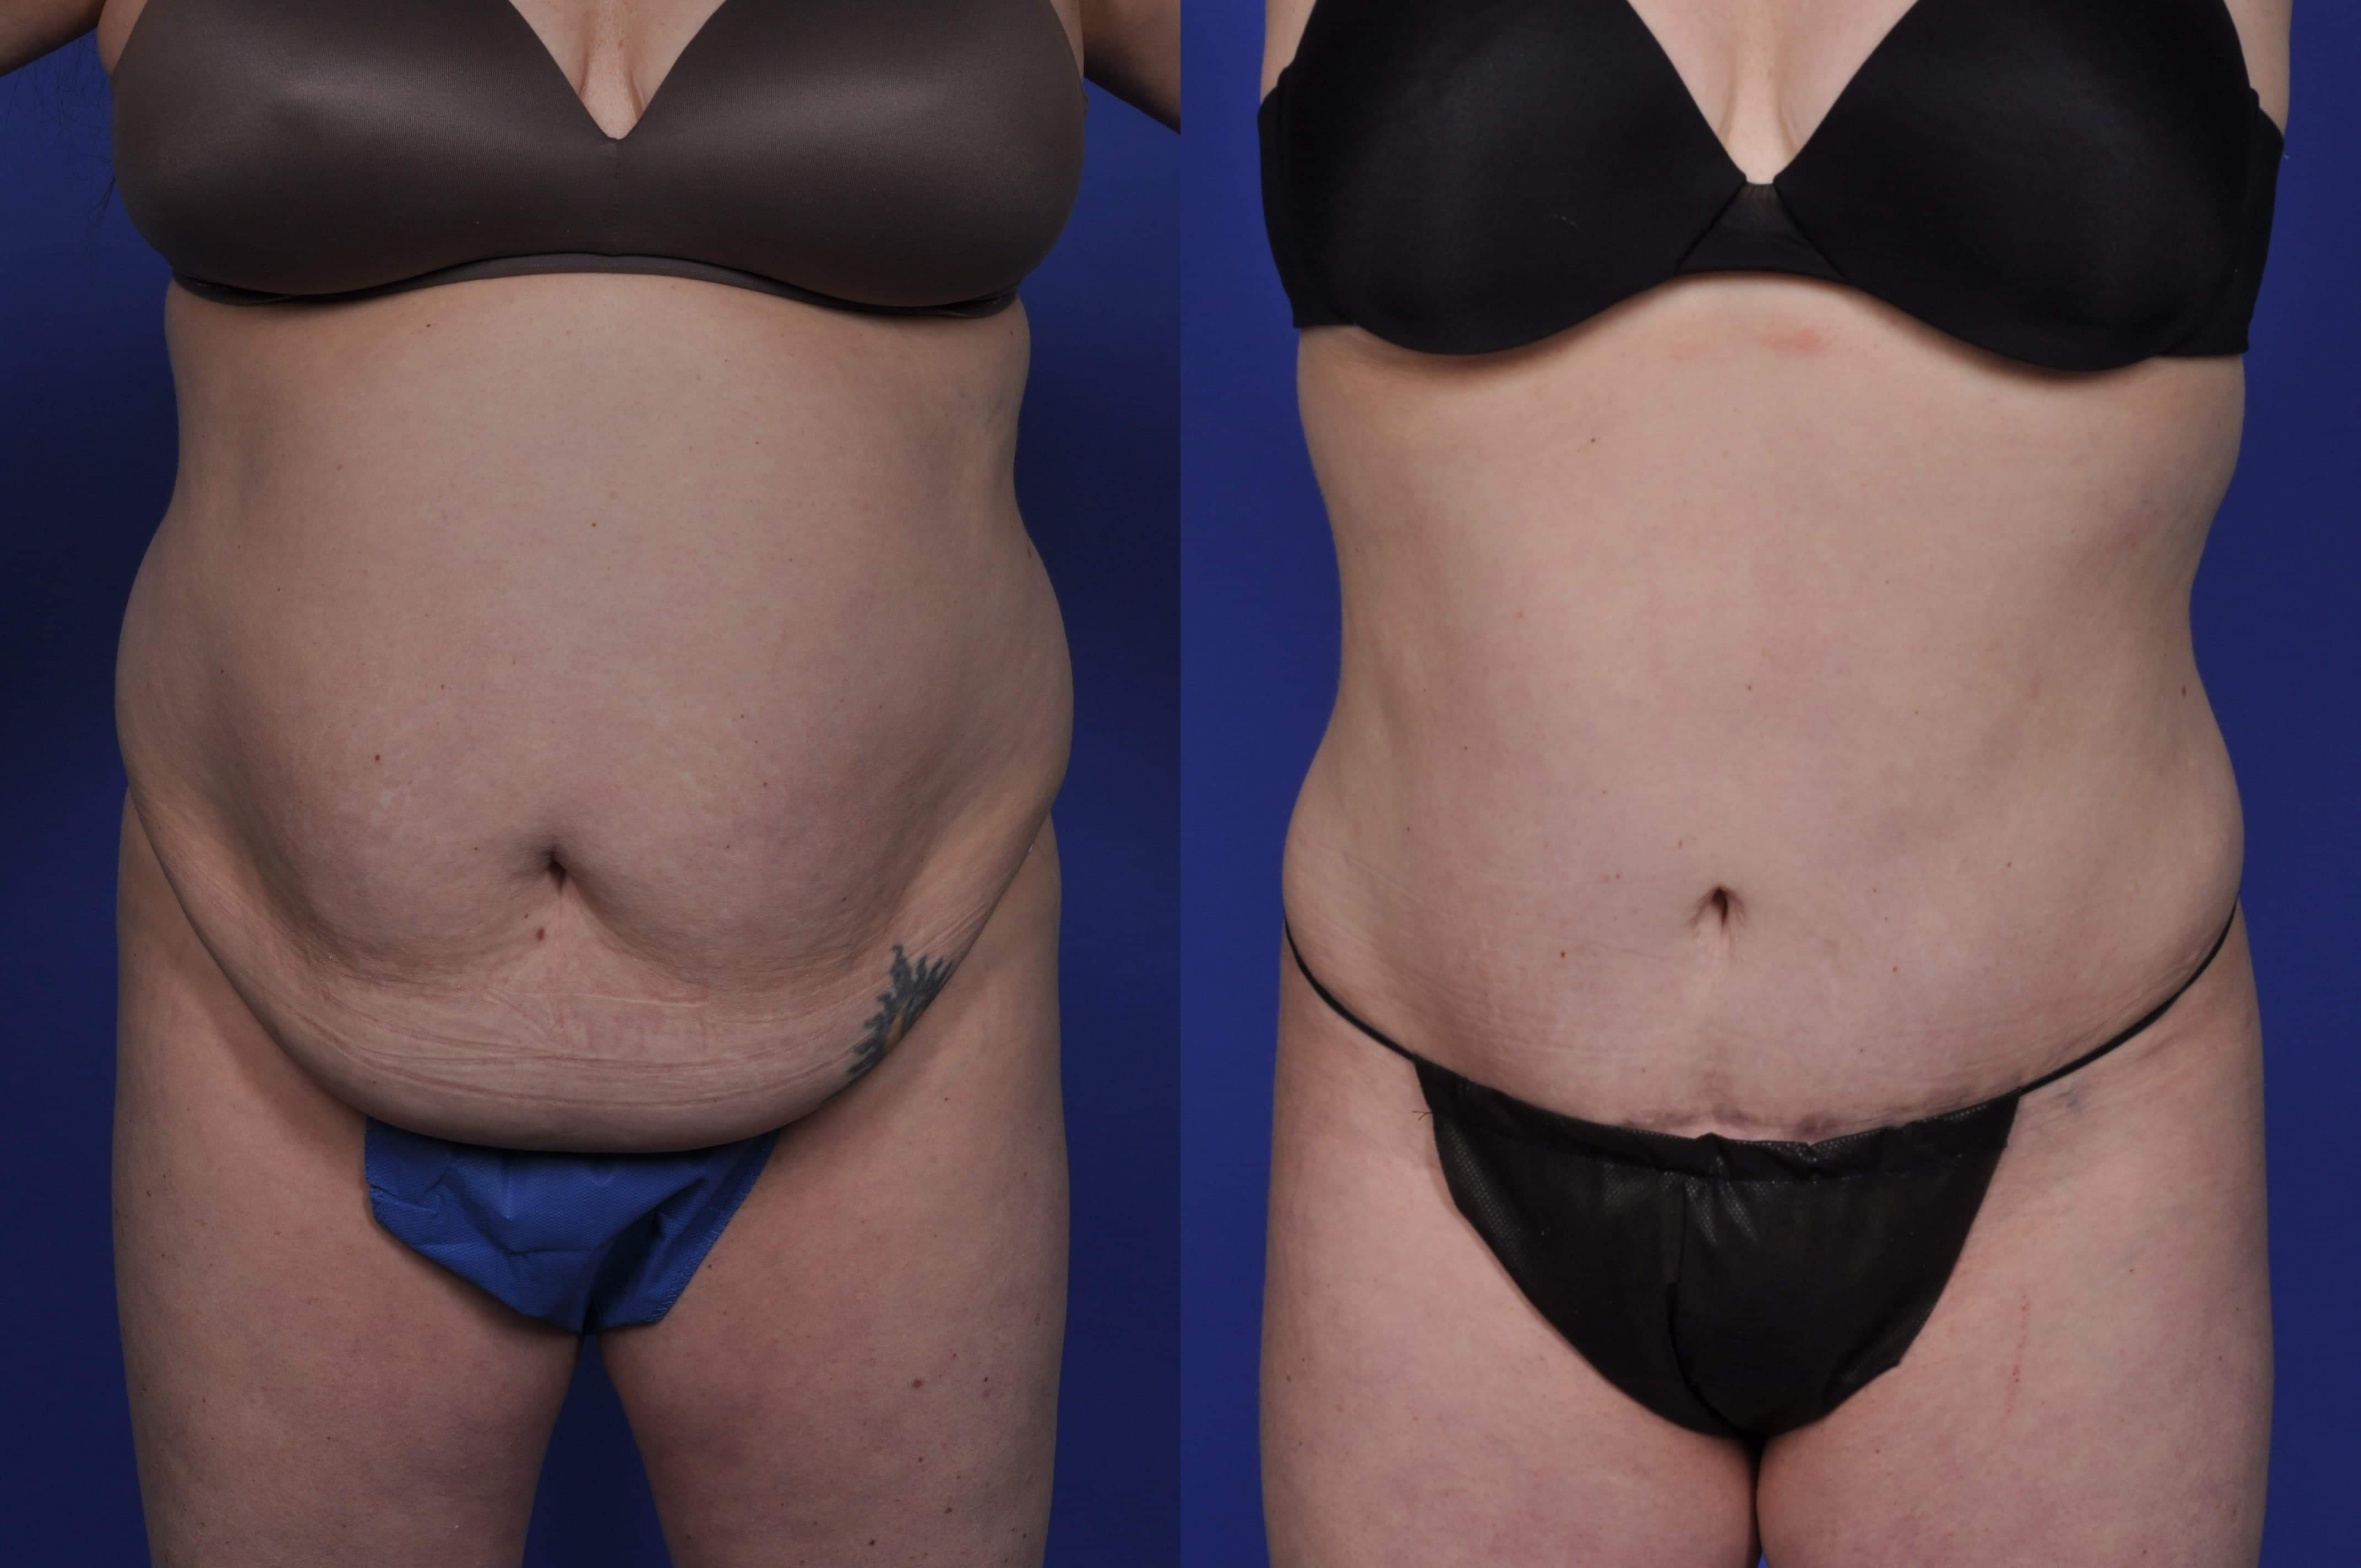 Plastic Surgery Tummy Tuck Before After photo - 1